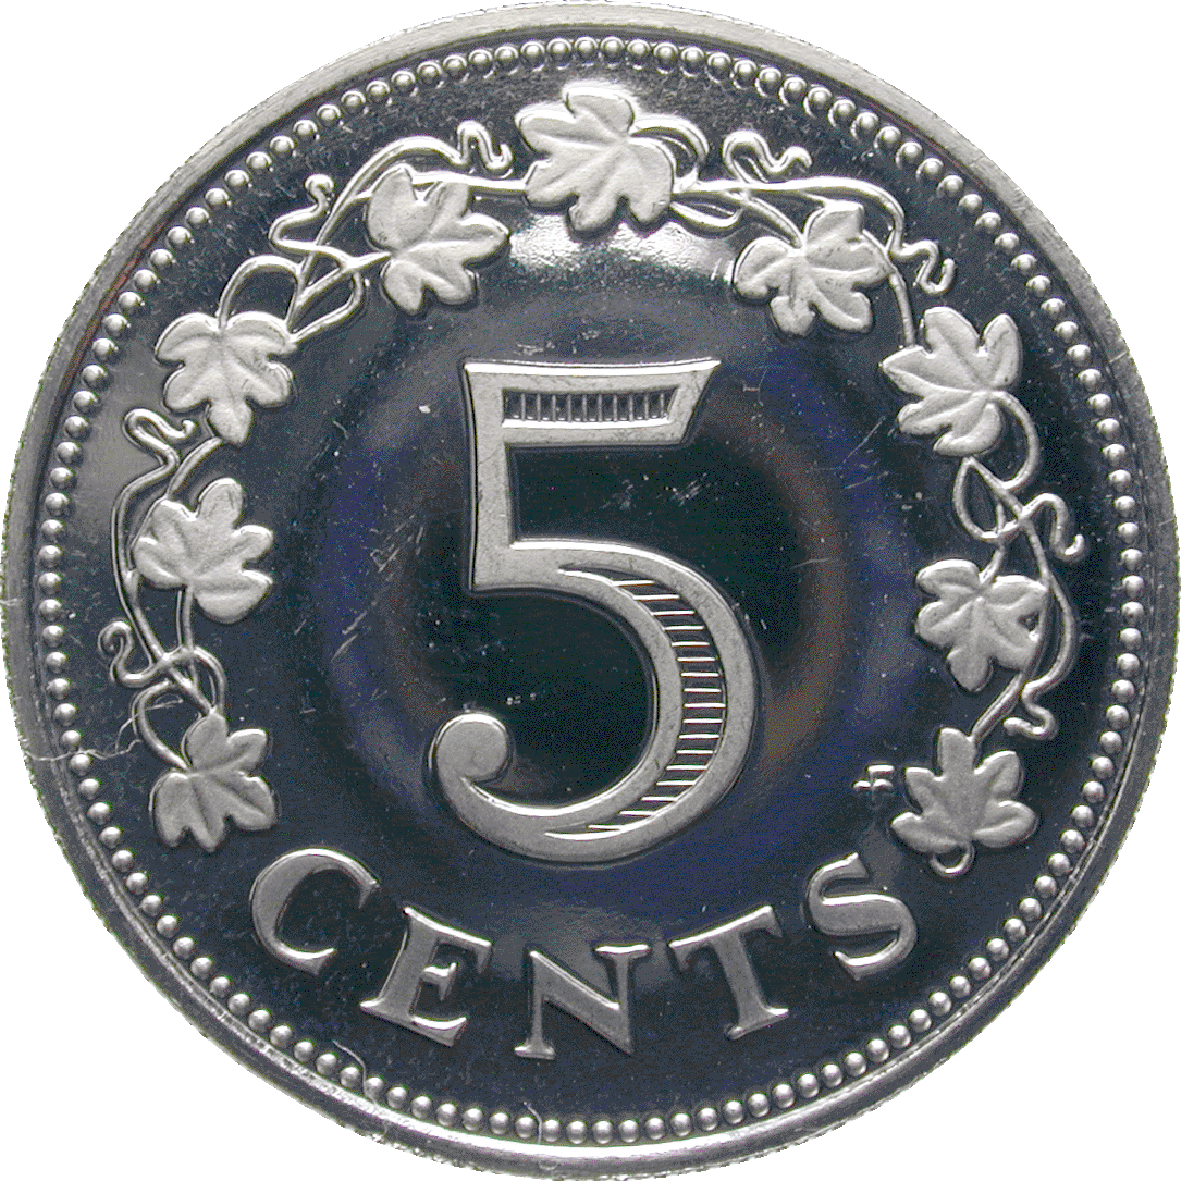 Republik Malta, 5 Cent 1976 (reverse)